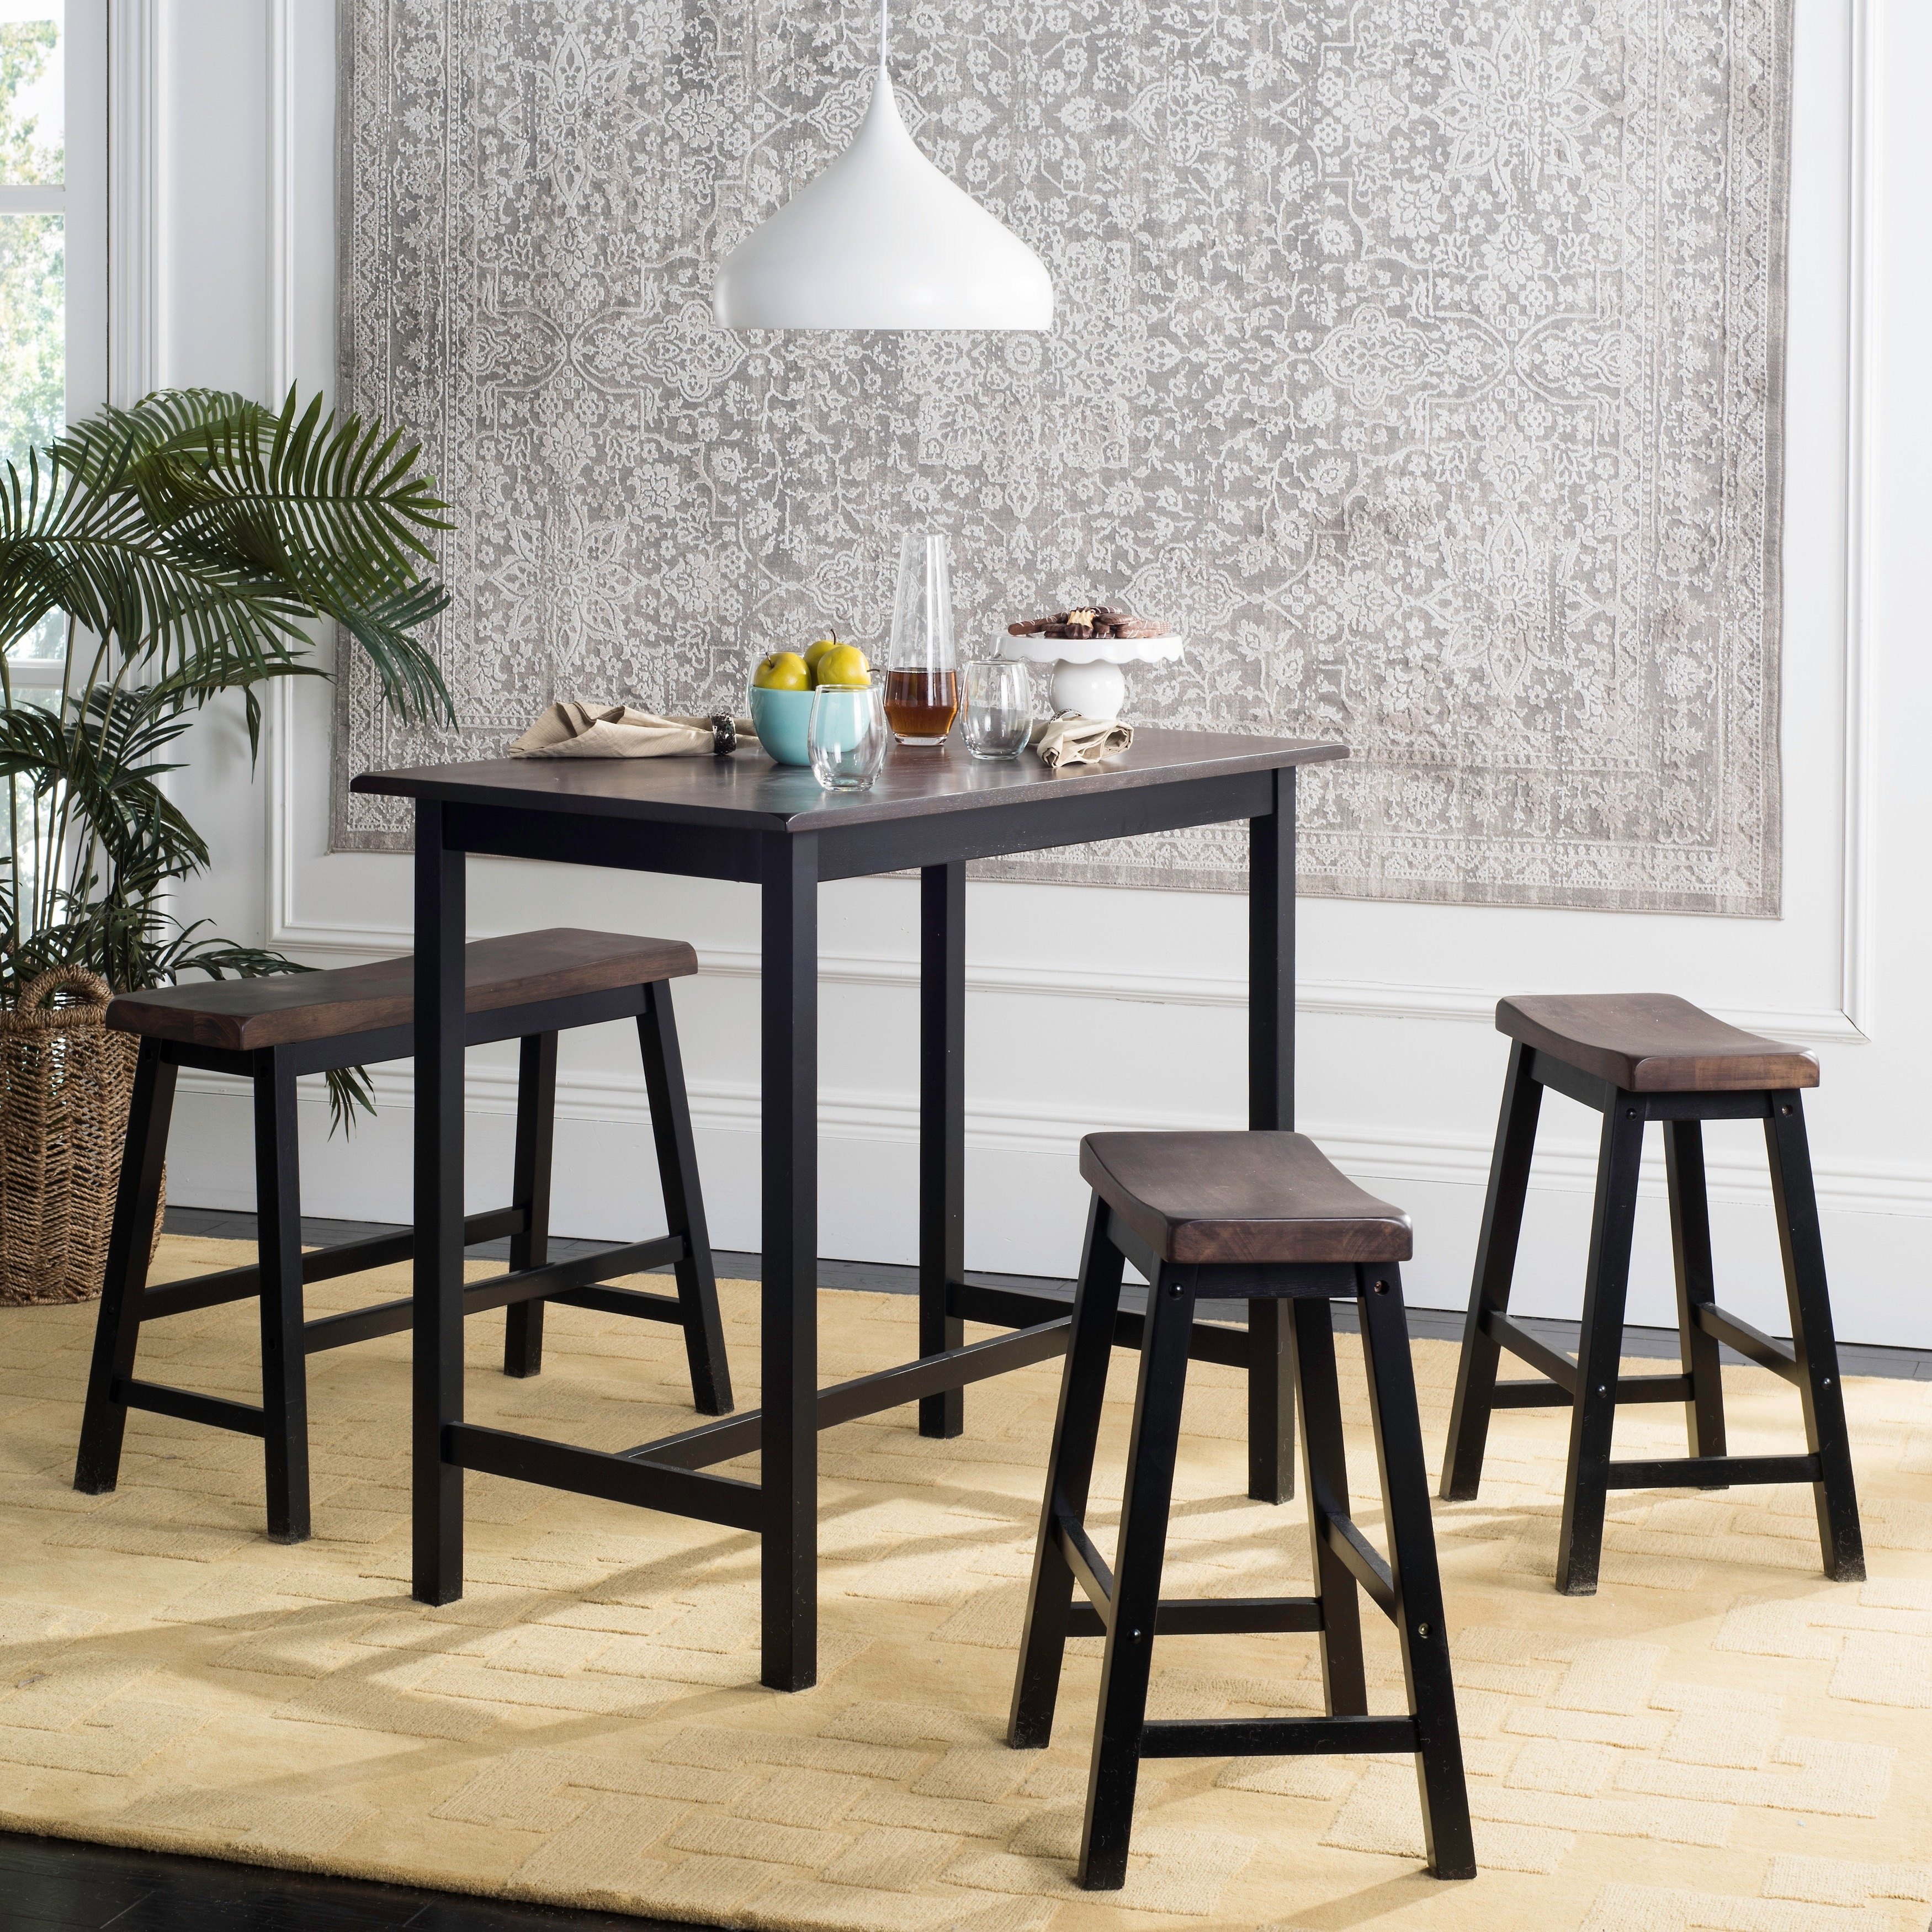 Safavieh Bistro 4 Piece Counter Height Bench And Stool Pub Set On Free Shipping Today 6240870